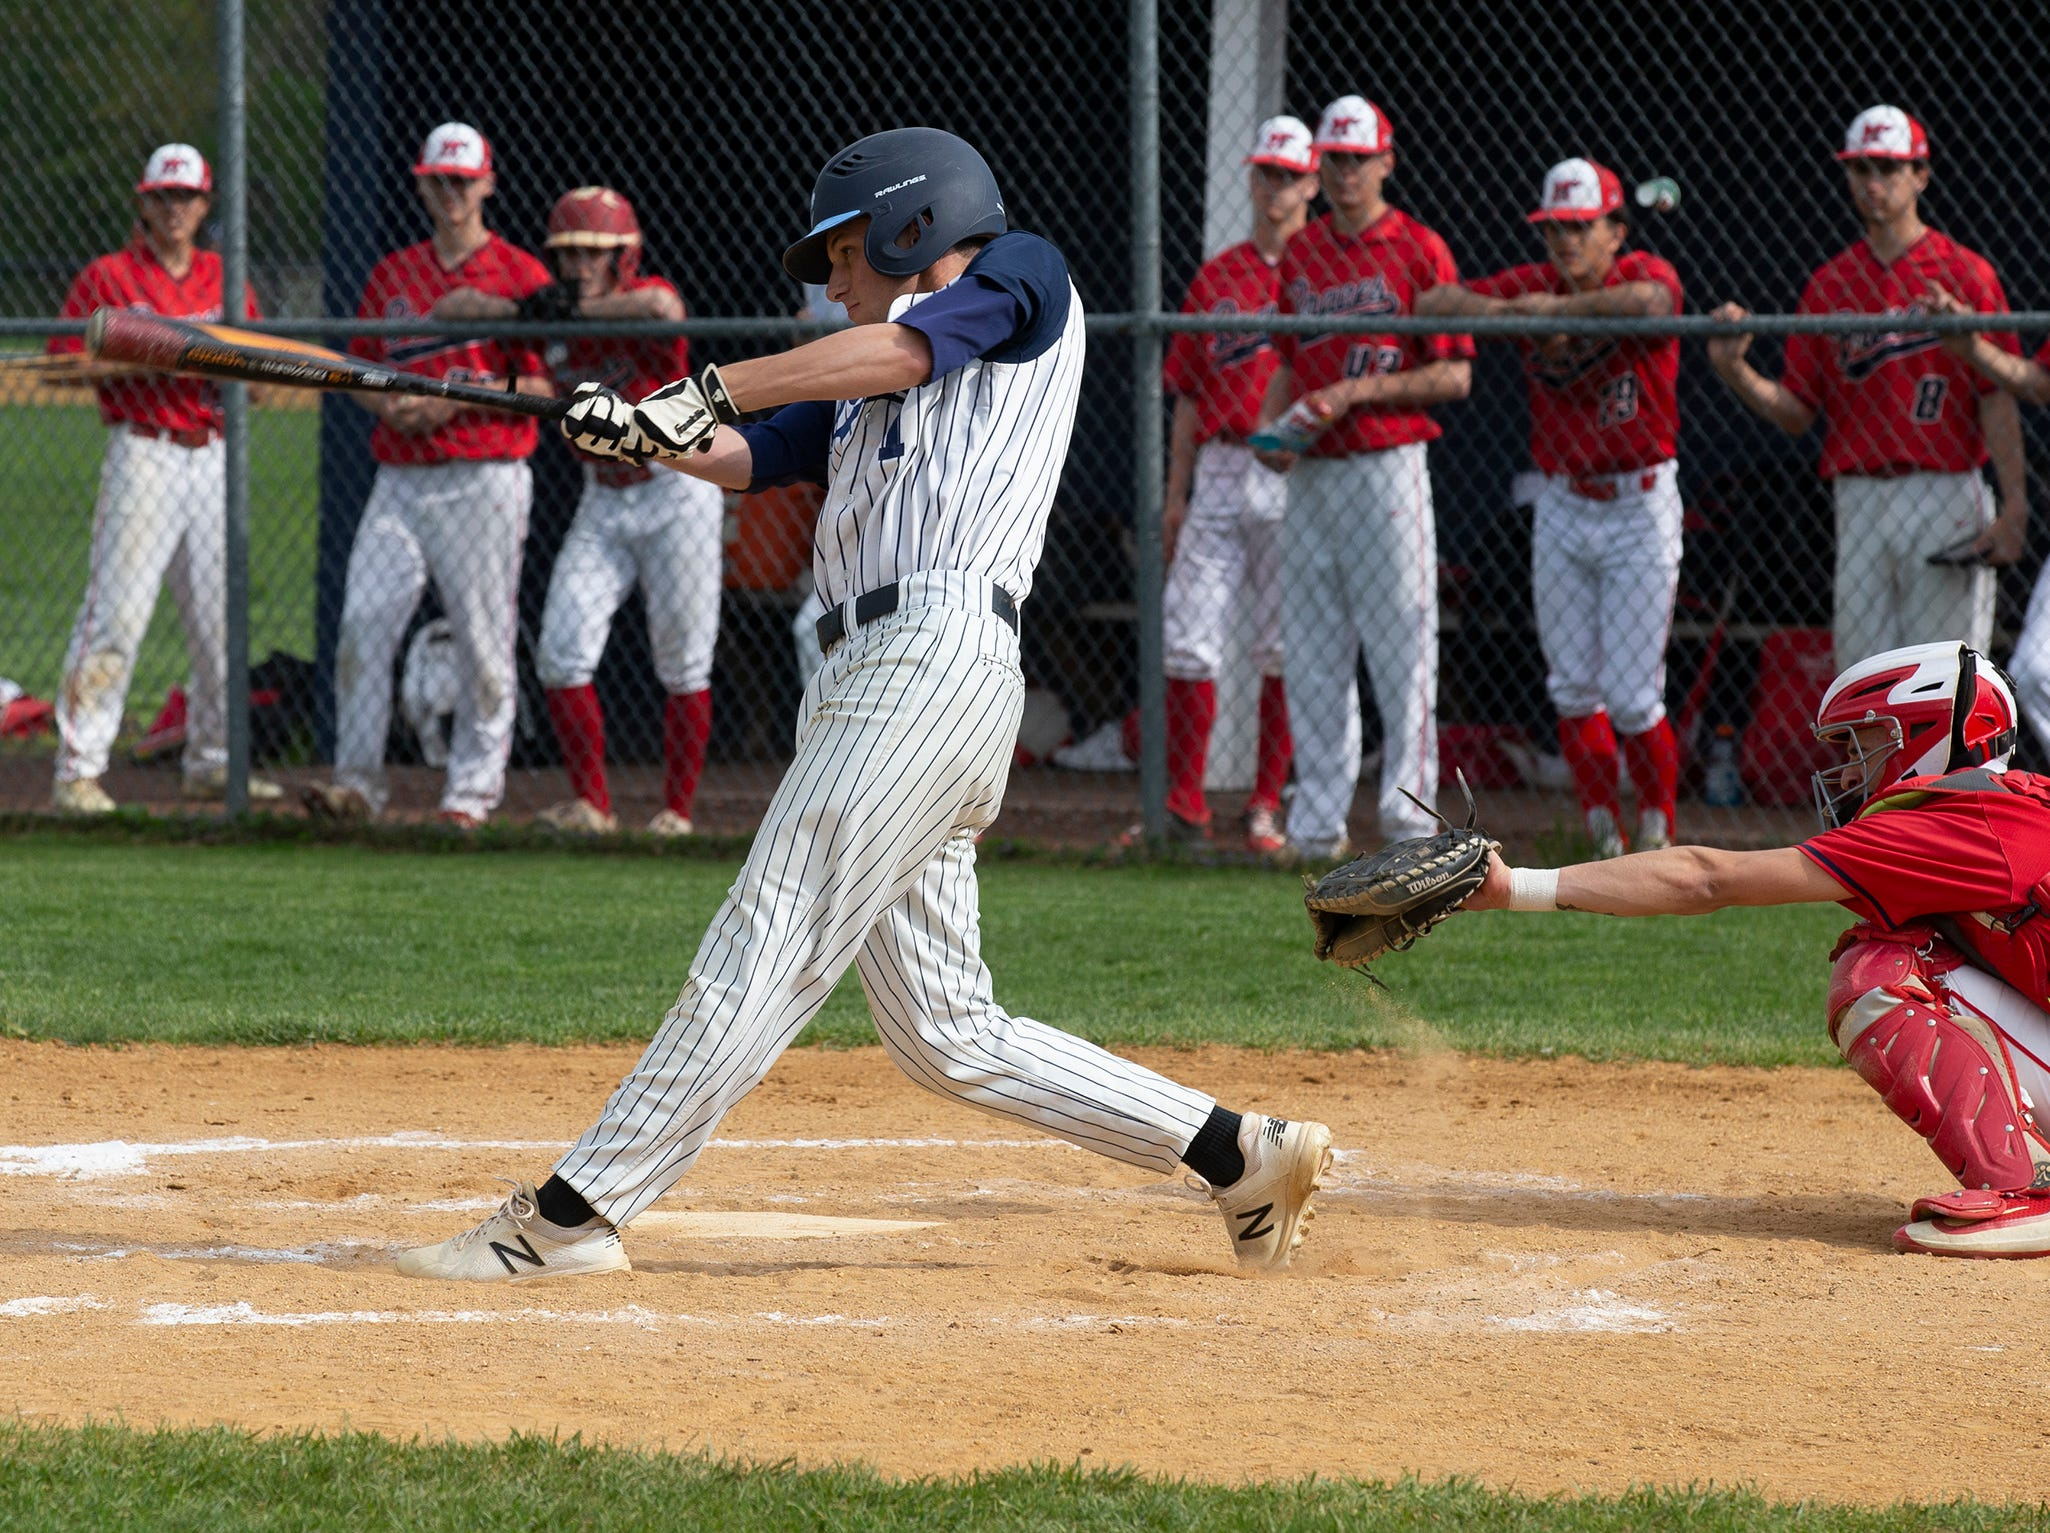 CBA's Anthony Celestre drives in Declan Hoverter for his team's first run of game. Manalapan baseball vs Christian Brothers Academy in Middletown NJ. On May 2, 2019.